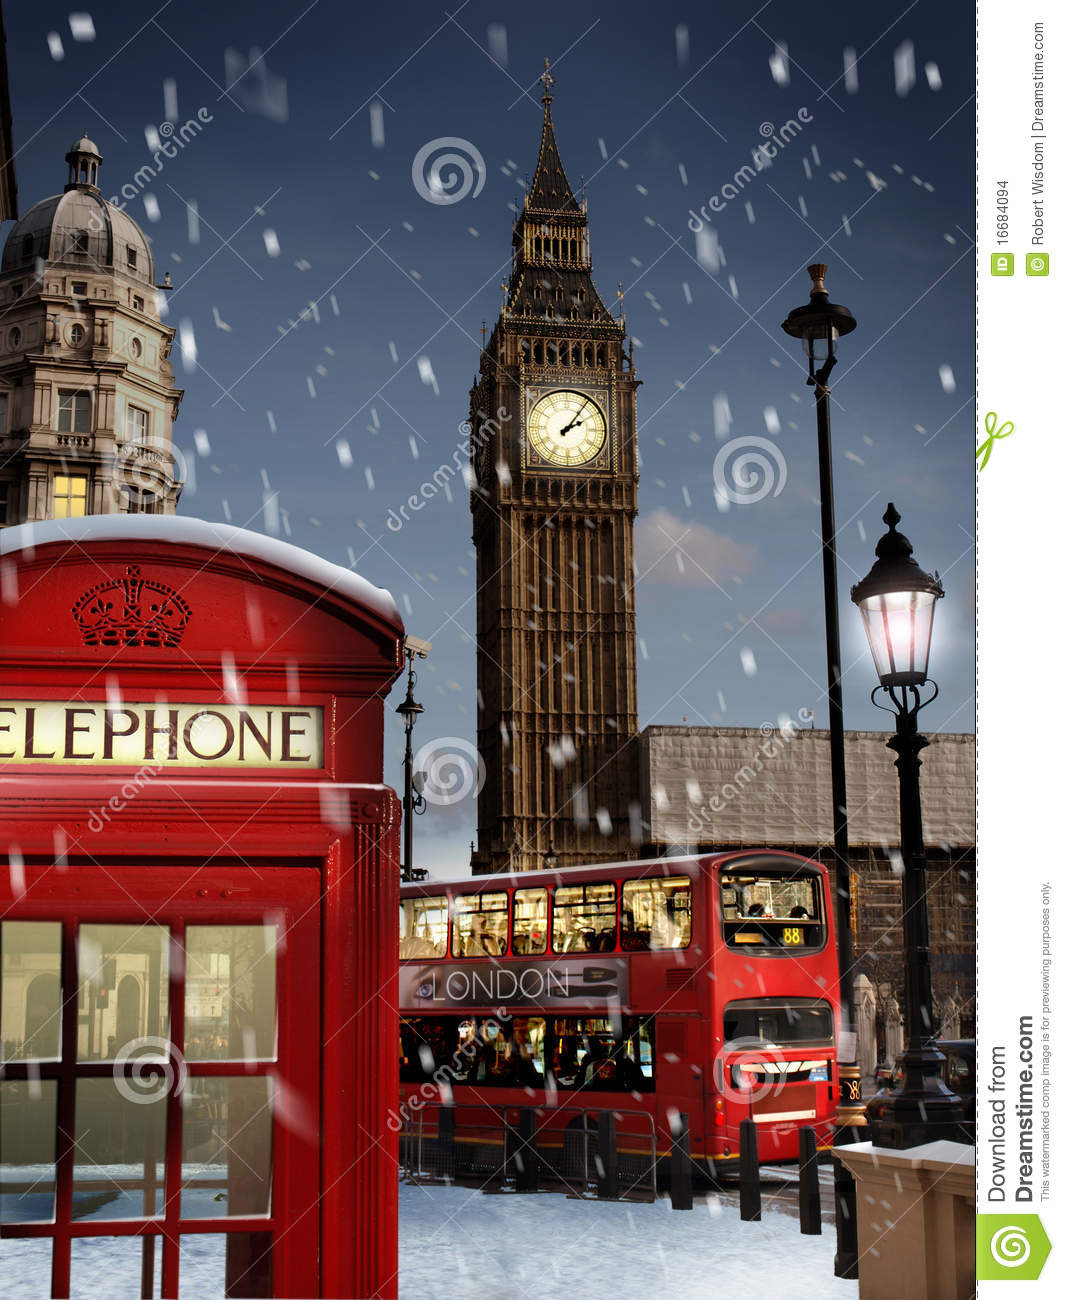 Iphone 5 Falling Snow Wallpaper London At Christmas Stock Images Image 16684094